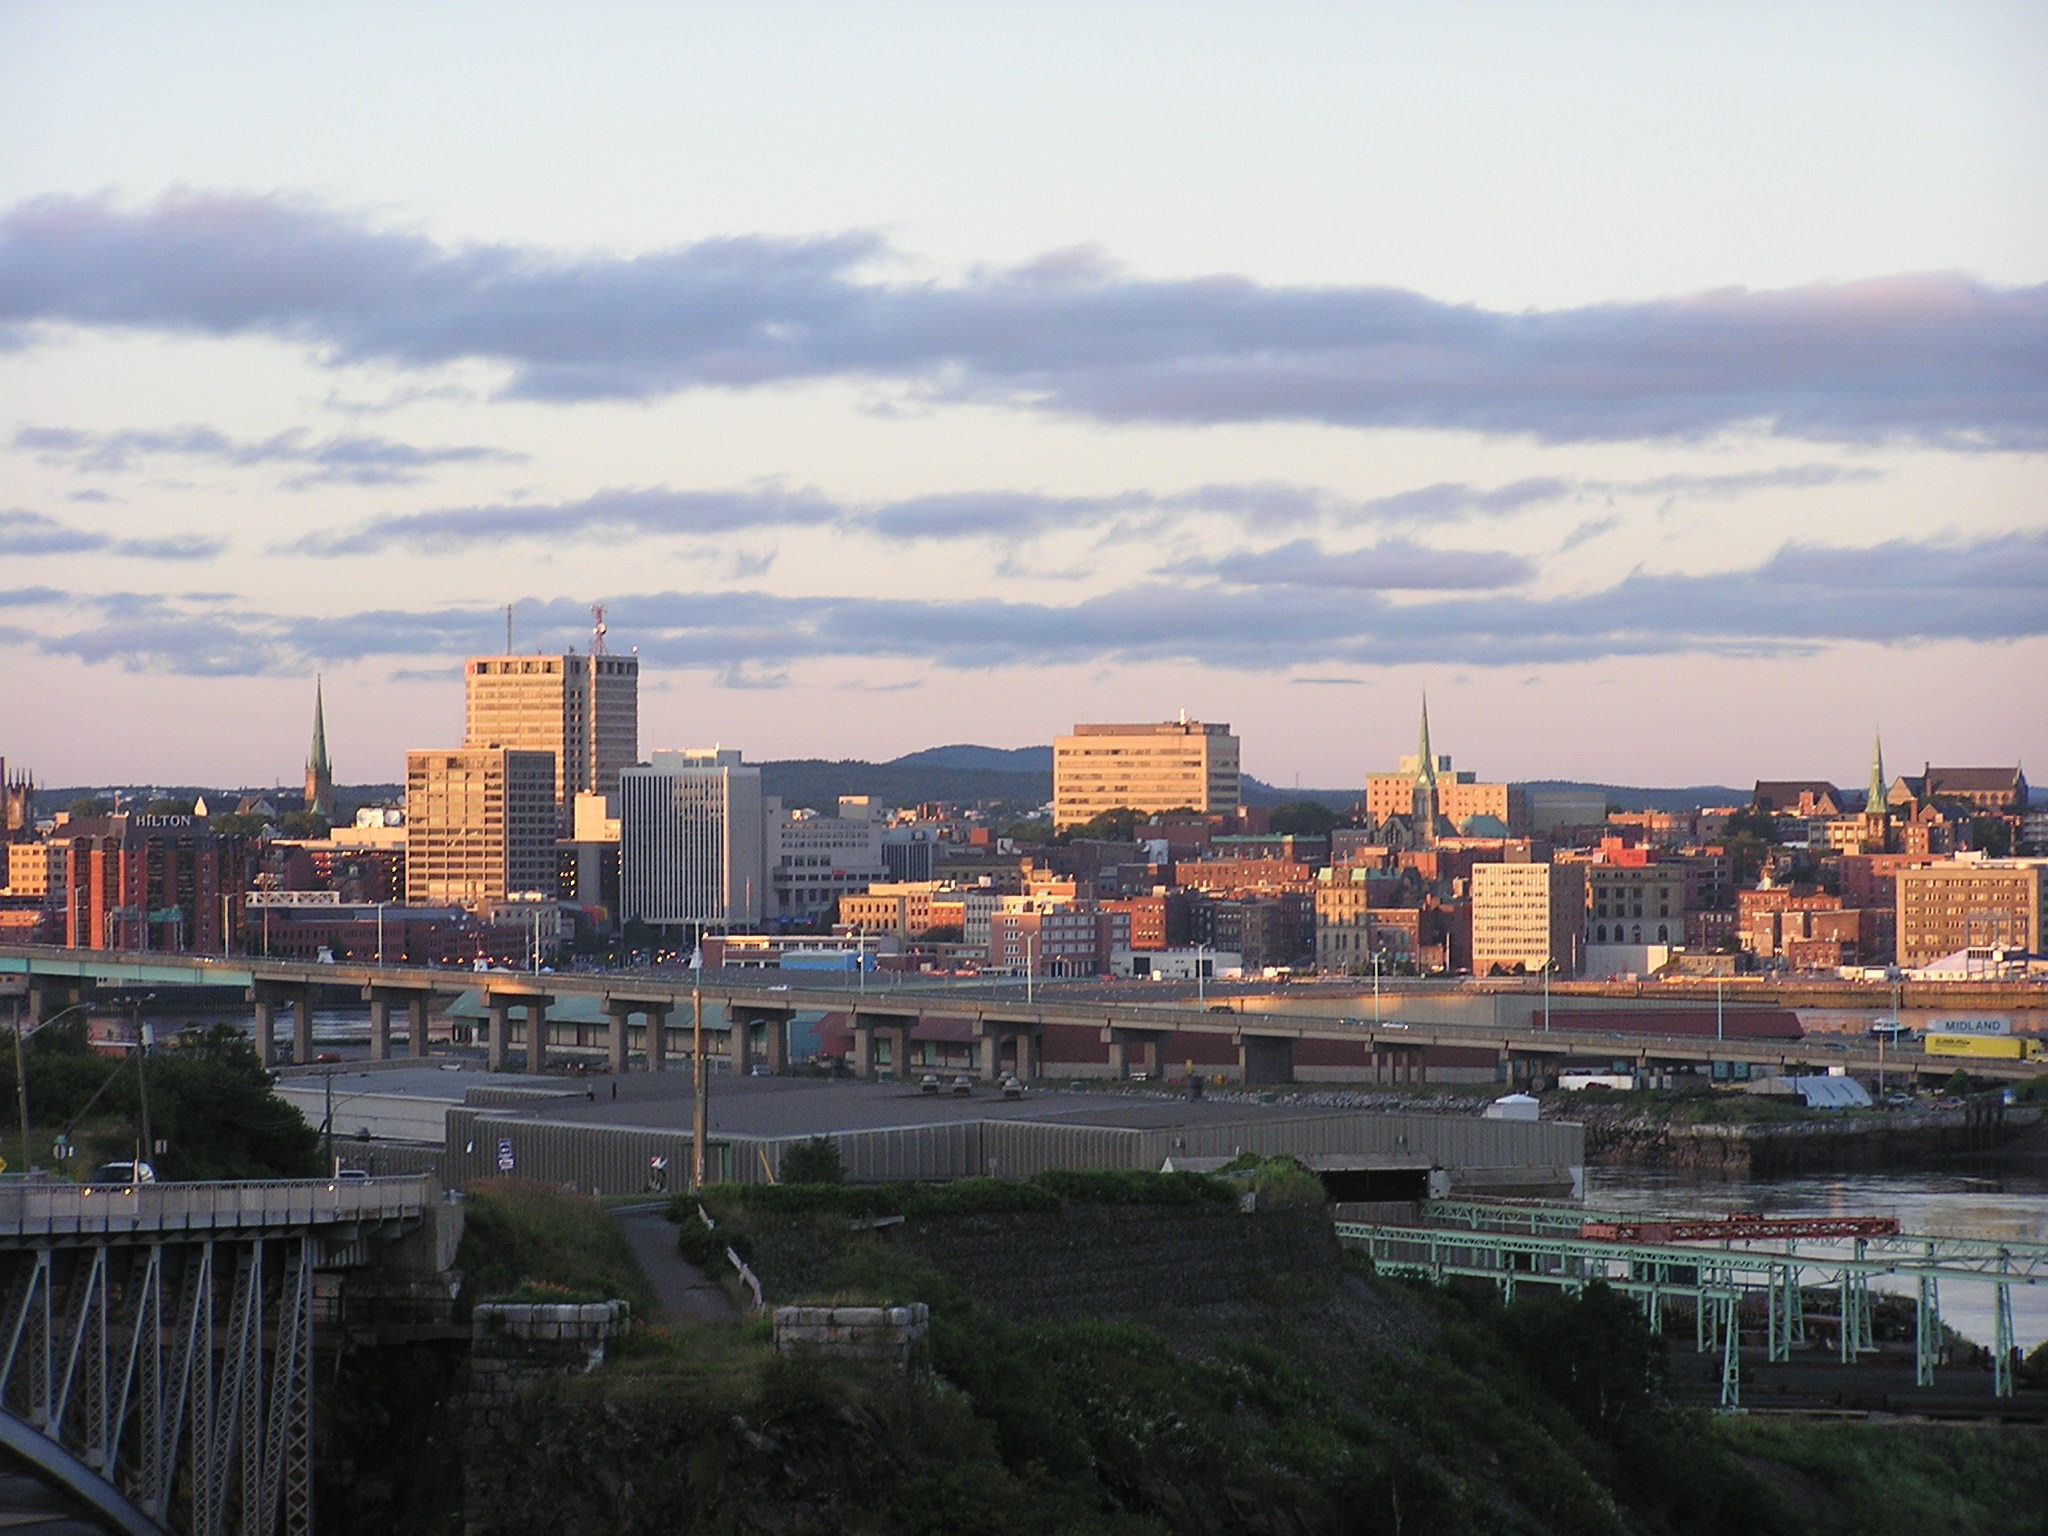 Saint John (NB) Canada  city photos gallery : Original file ‎ 2,048 × 1,536 pixels, file size: 576 KB, MIME type ...